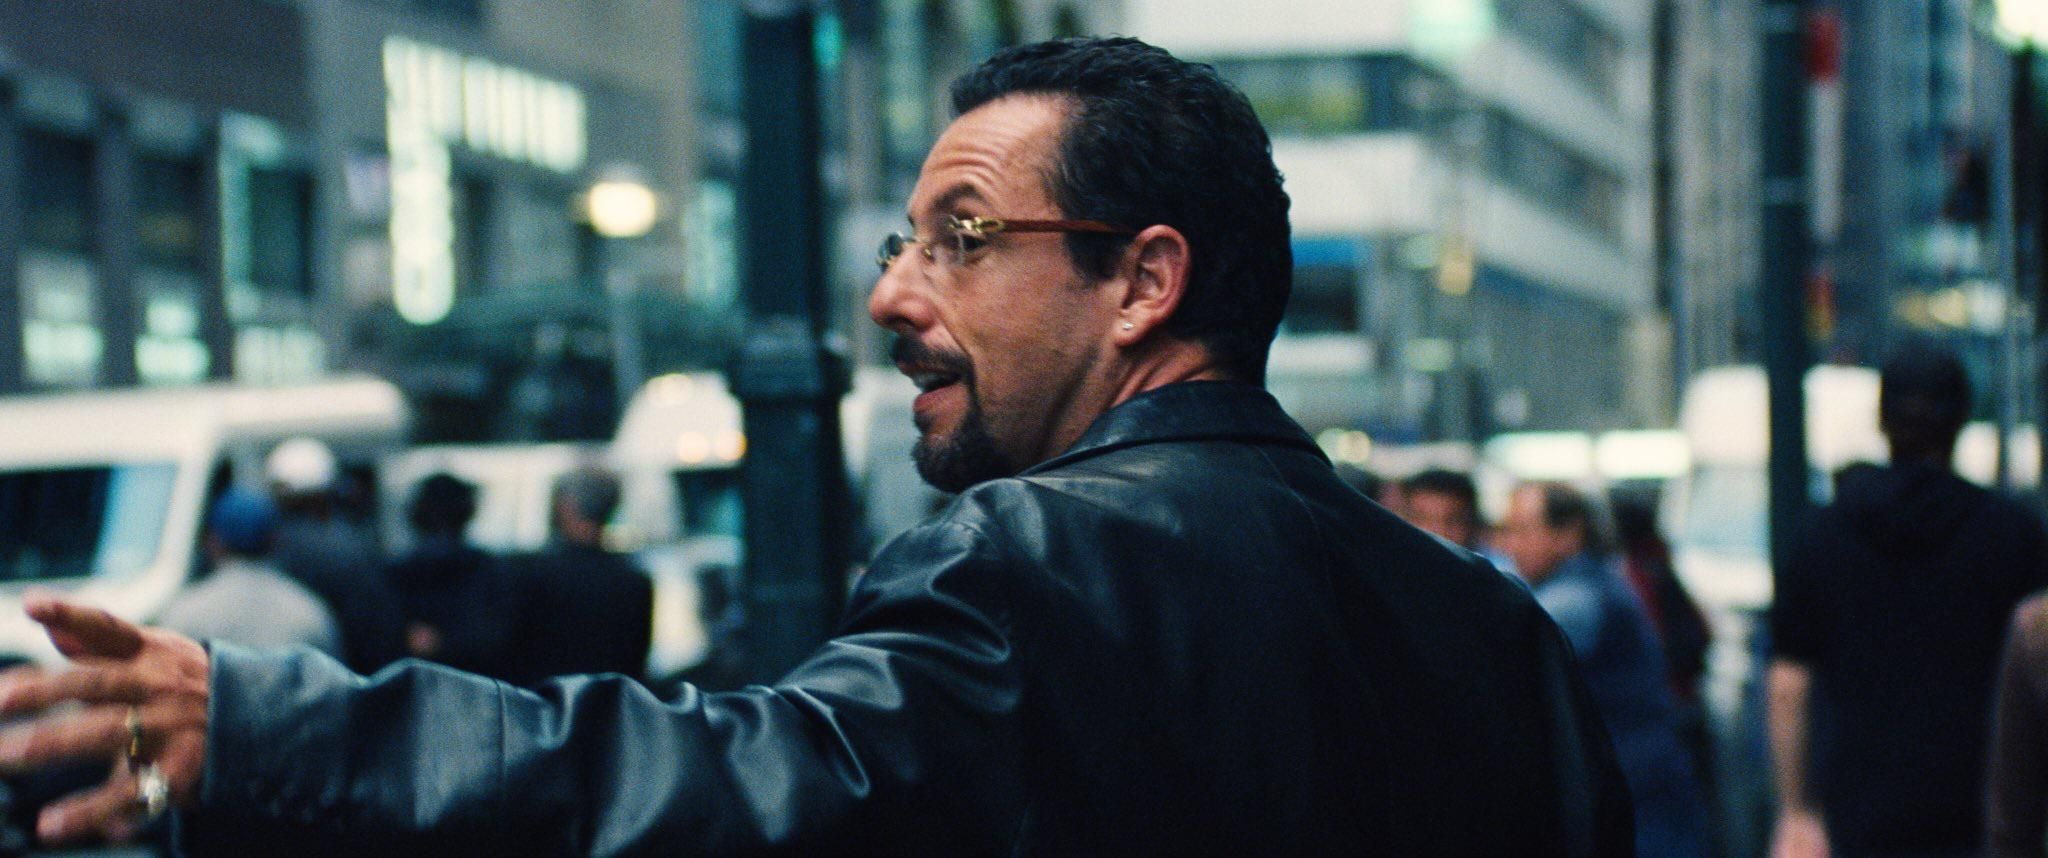 New Image Of Adam Sandlers Role In Uncut Gems The New A24 Film Directed By The Safdie Brothers Https Adam Sandler Telluride Film Festival Good Movies To Watch